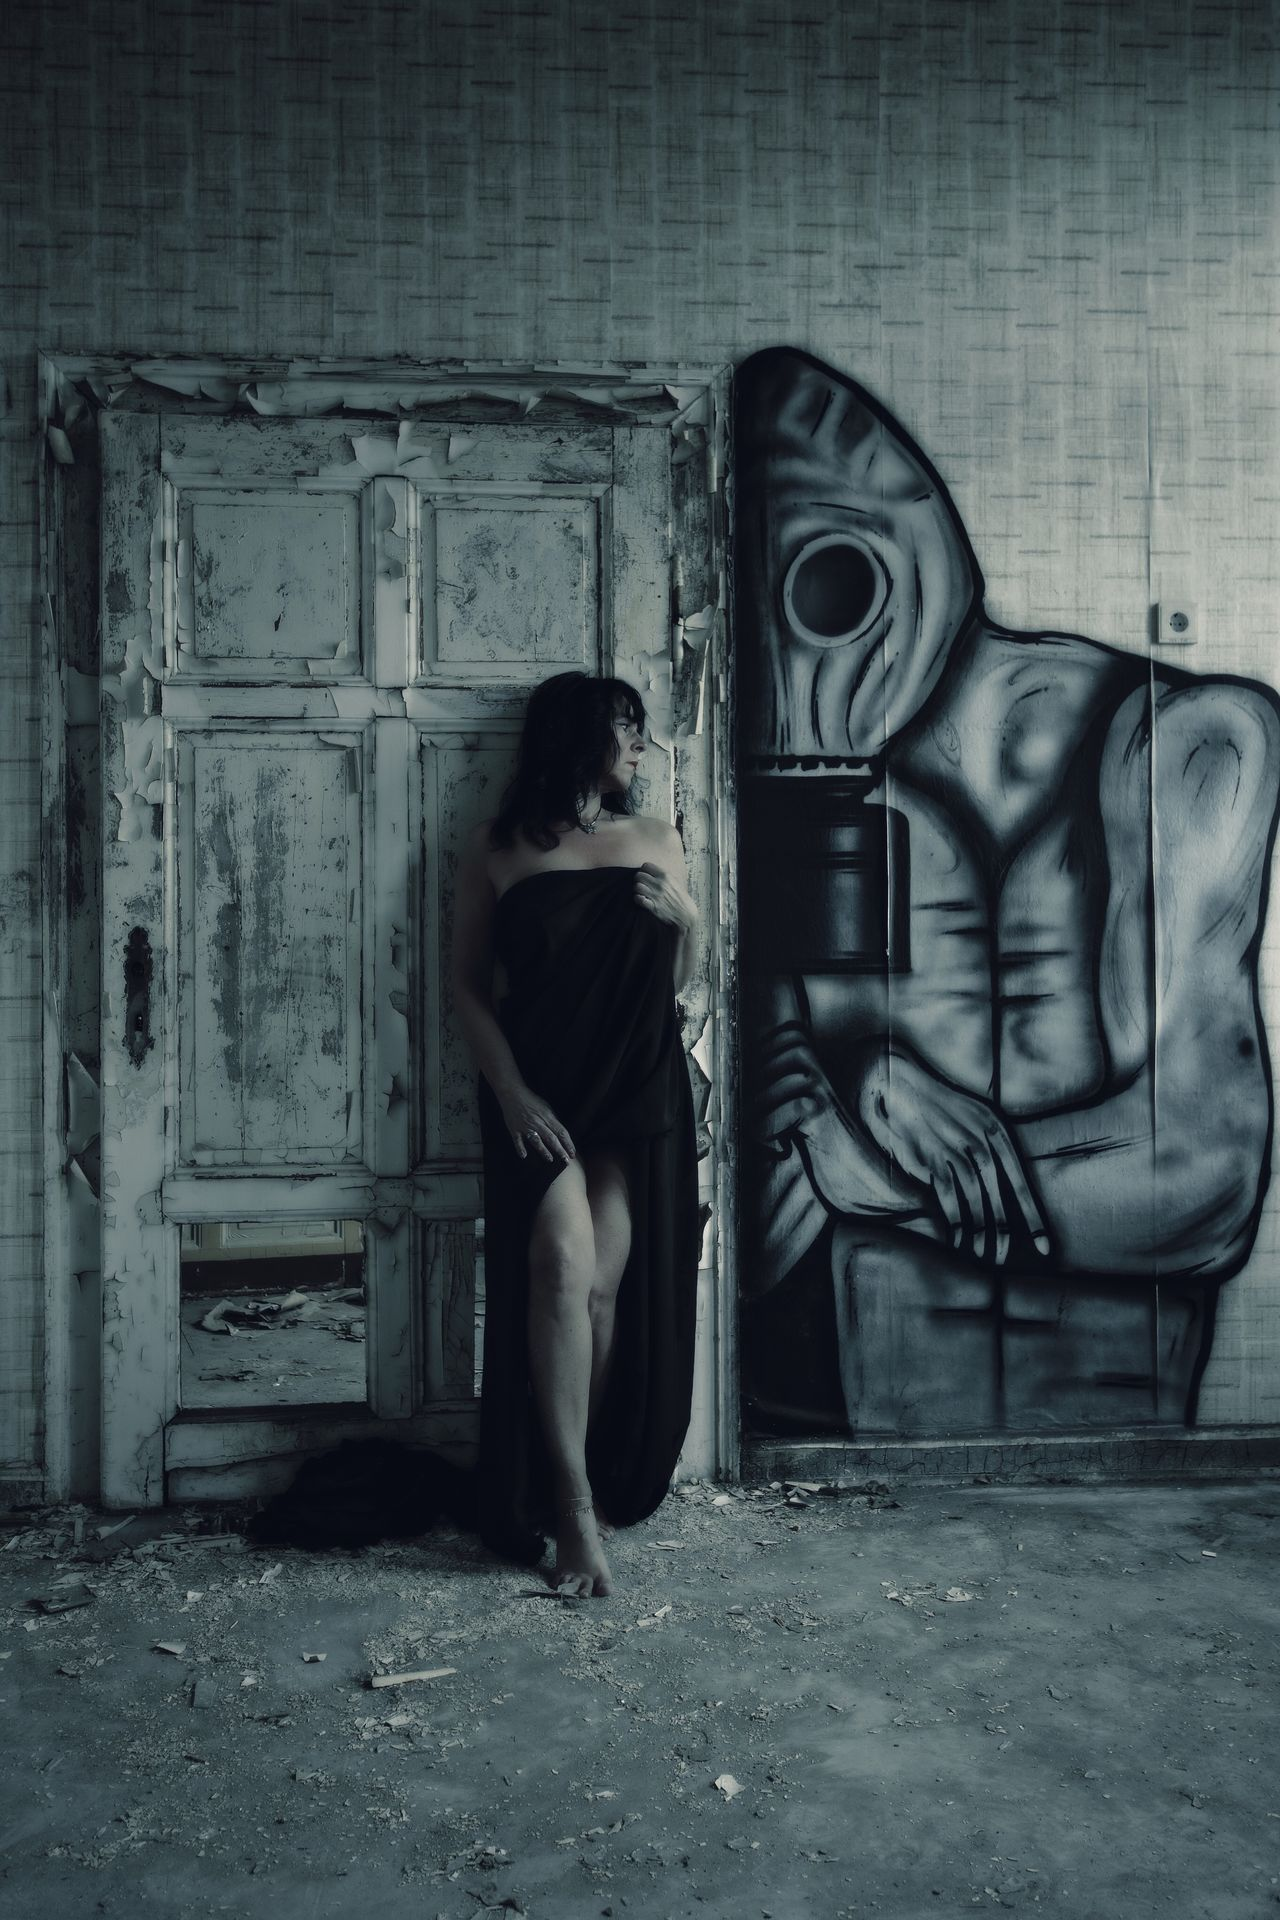 Who is afraid of the dark man Door Abandoned Spooky Urbexphotography Lostplaces Portrait Fine Art Photography Abandoned Places Beauty Of Decay Beautiful Woman Women Portraits PortraitPhotography Women Of EyeEm Woman Portrait Portrait Of A Woman Beauty Self Portrait Graffiti